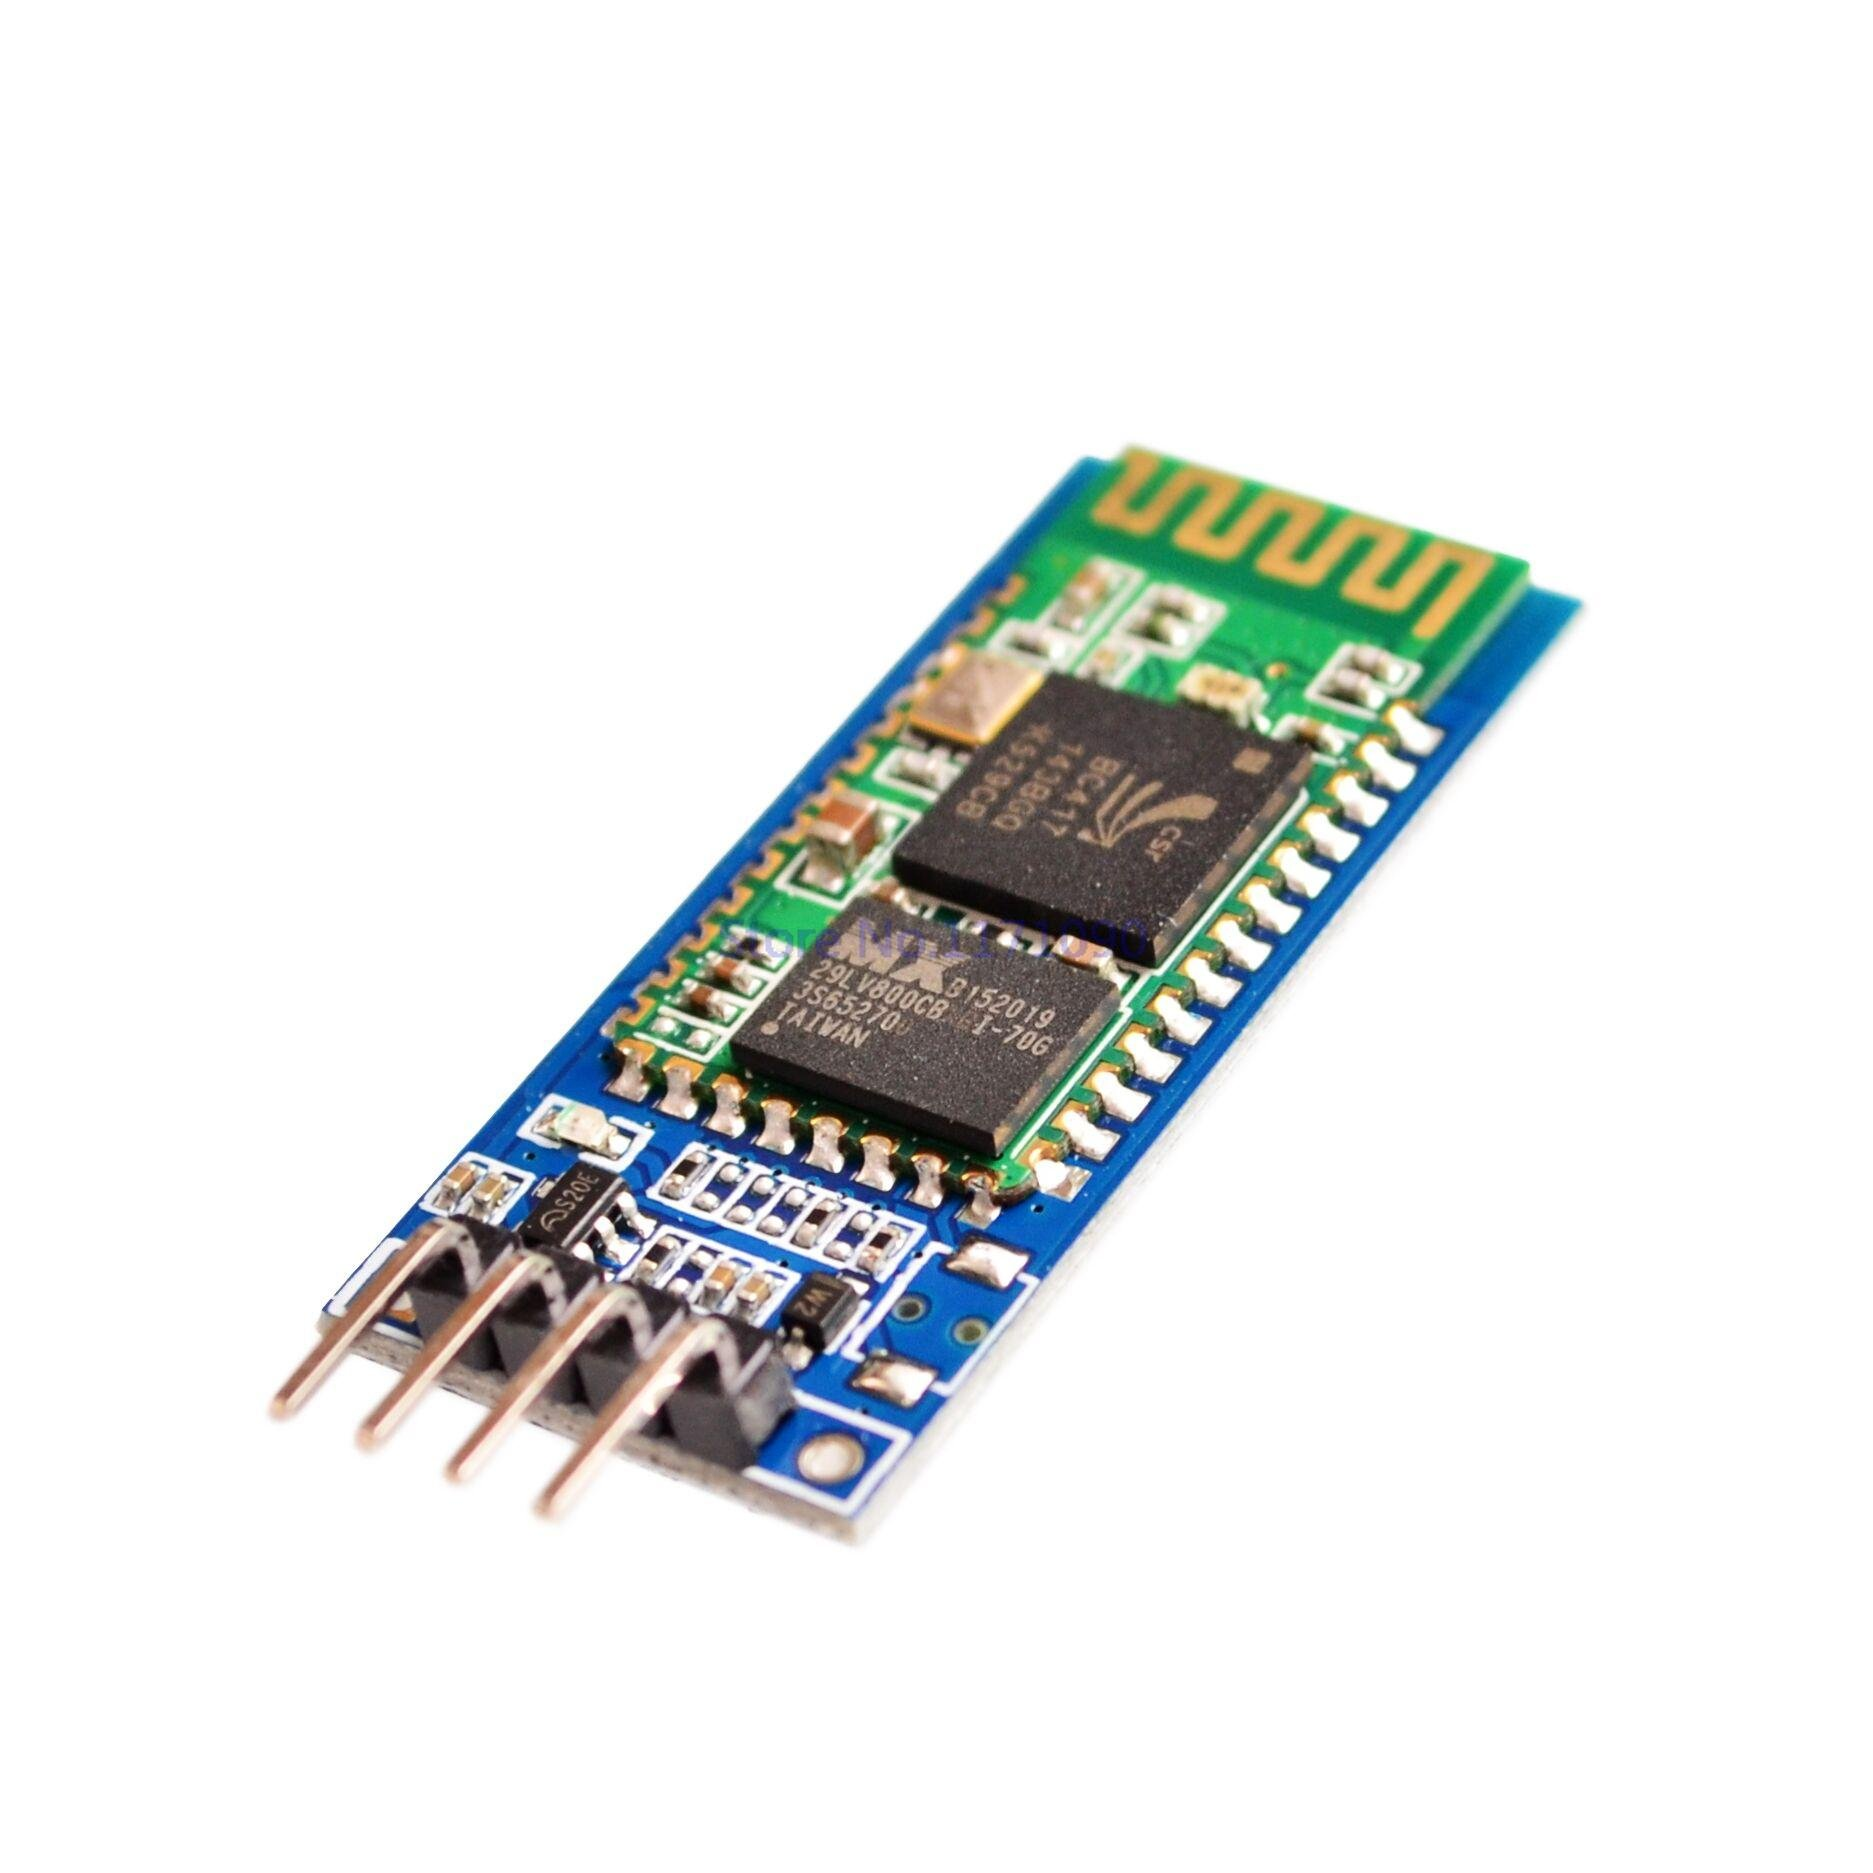 SuperiParts 20sets/lot HC-06 Wireless Serial 4 Pin Bluetooth RF Transceiver Module RS232 TTL for Arduino + Shipment